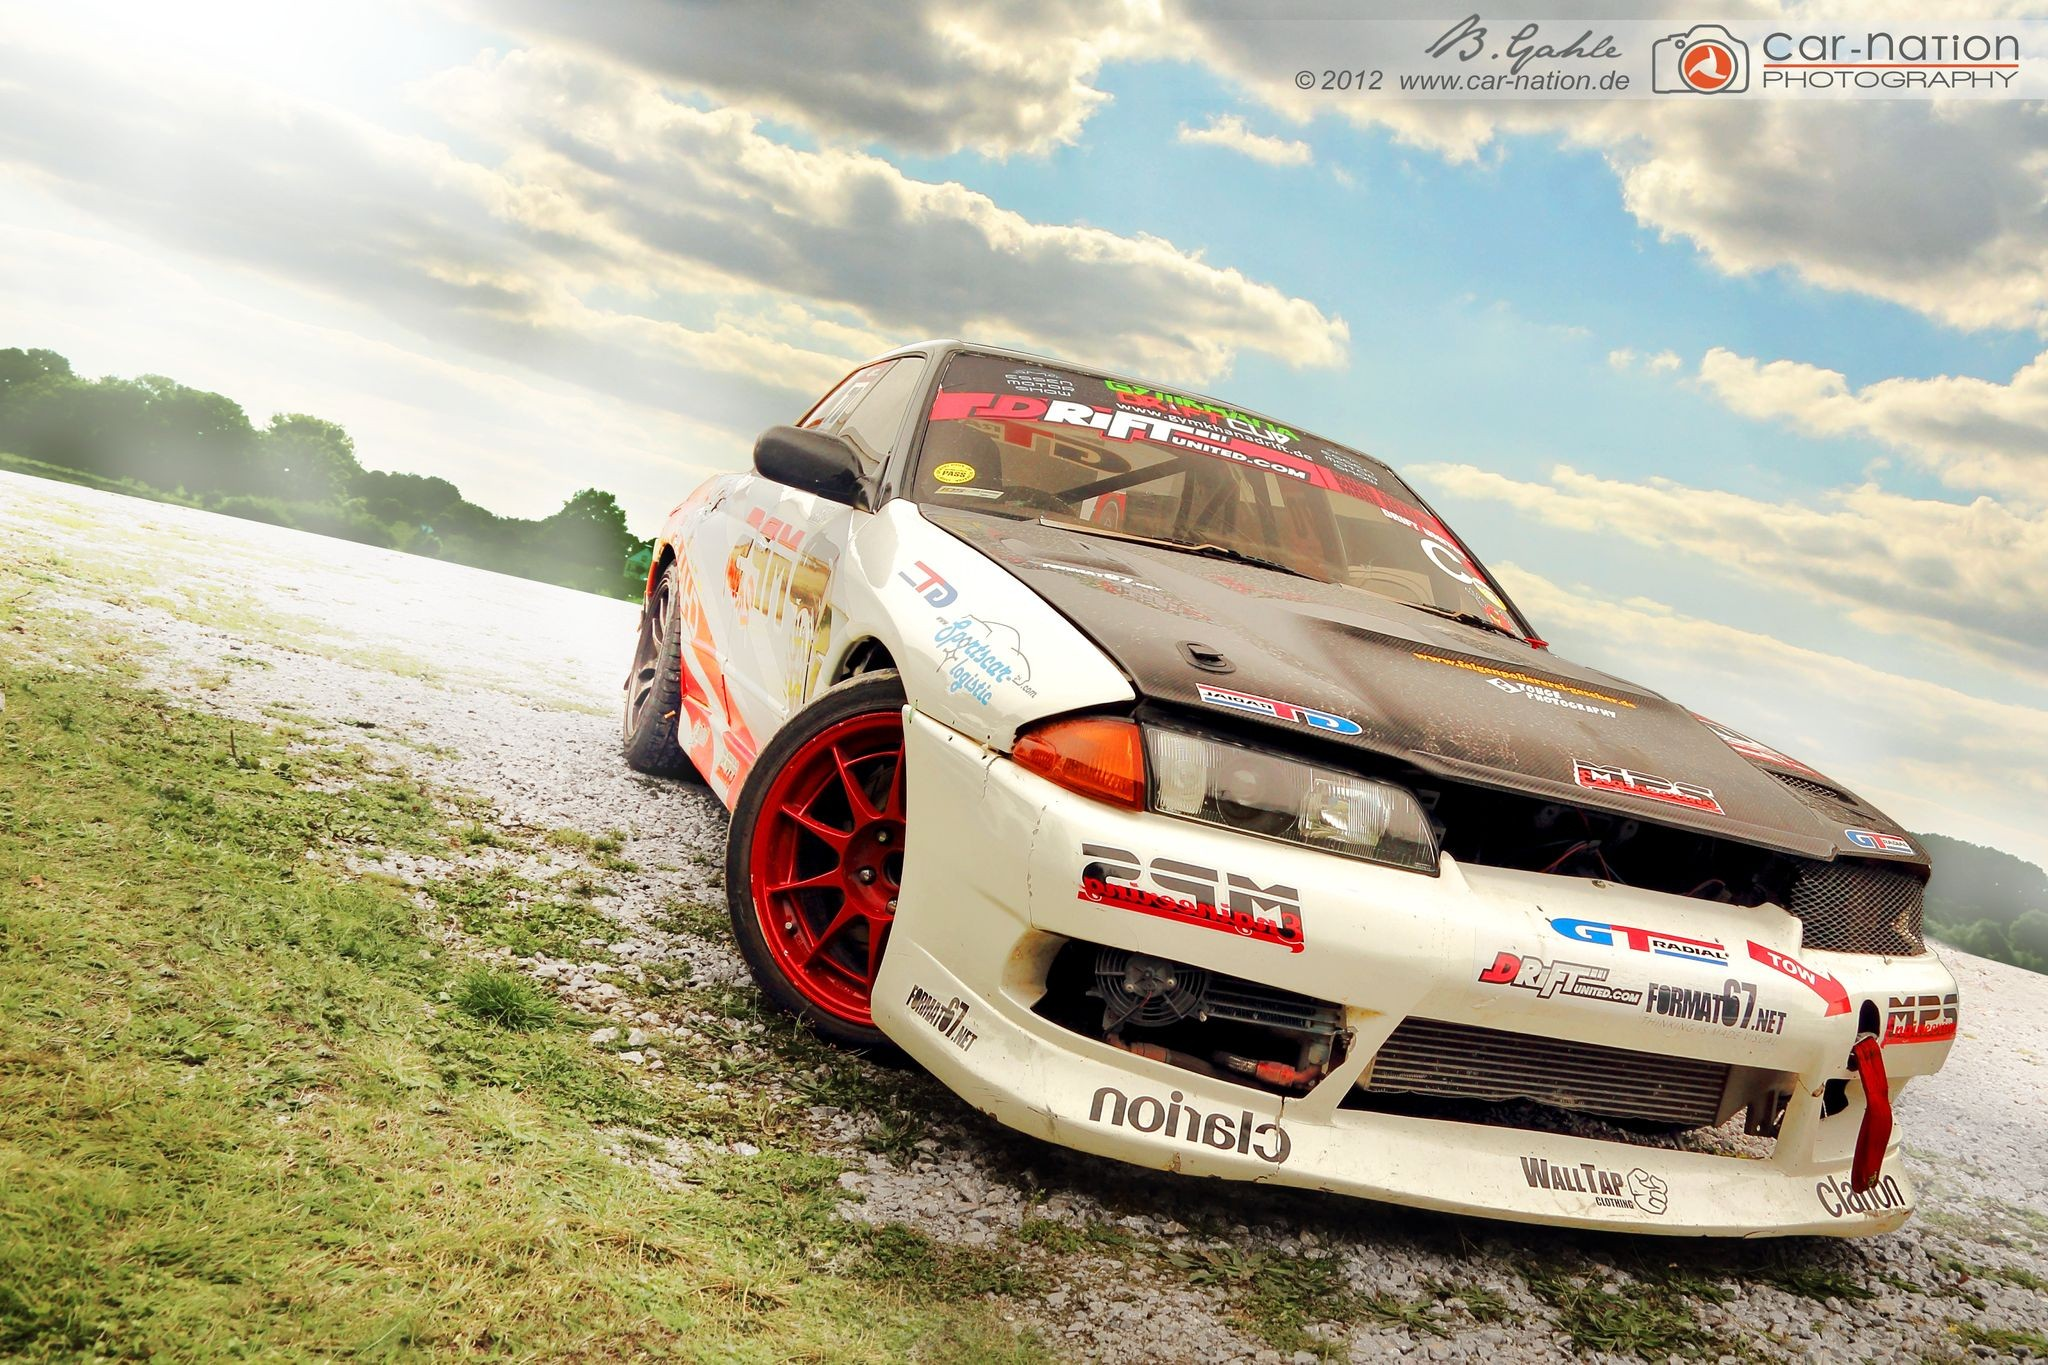 Fast And Furious 7 Cars Wallpapers Download Cars Tuning Jdm Drift Wallpaper 2048x1365 61131